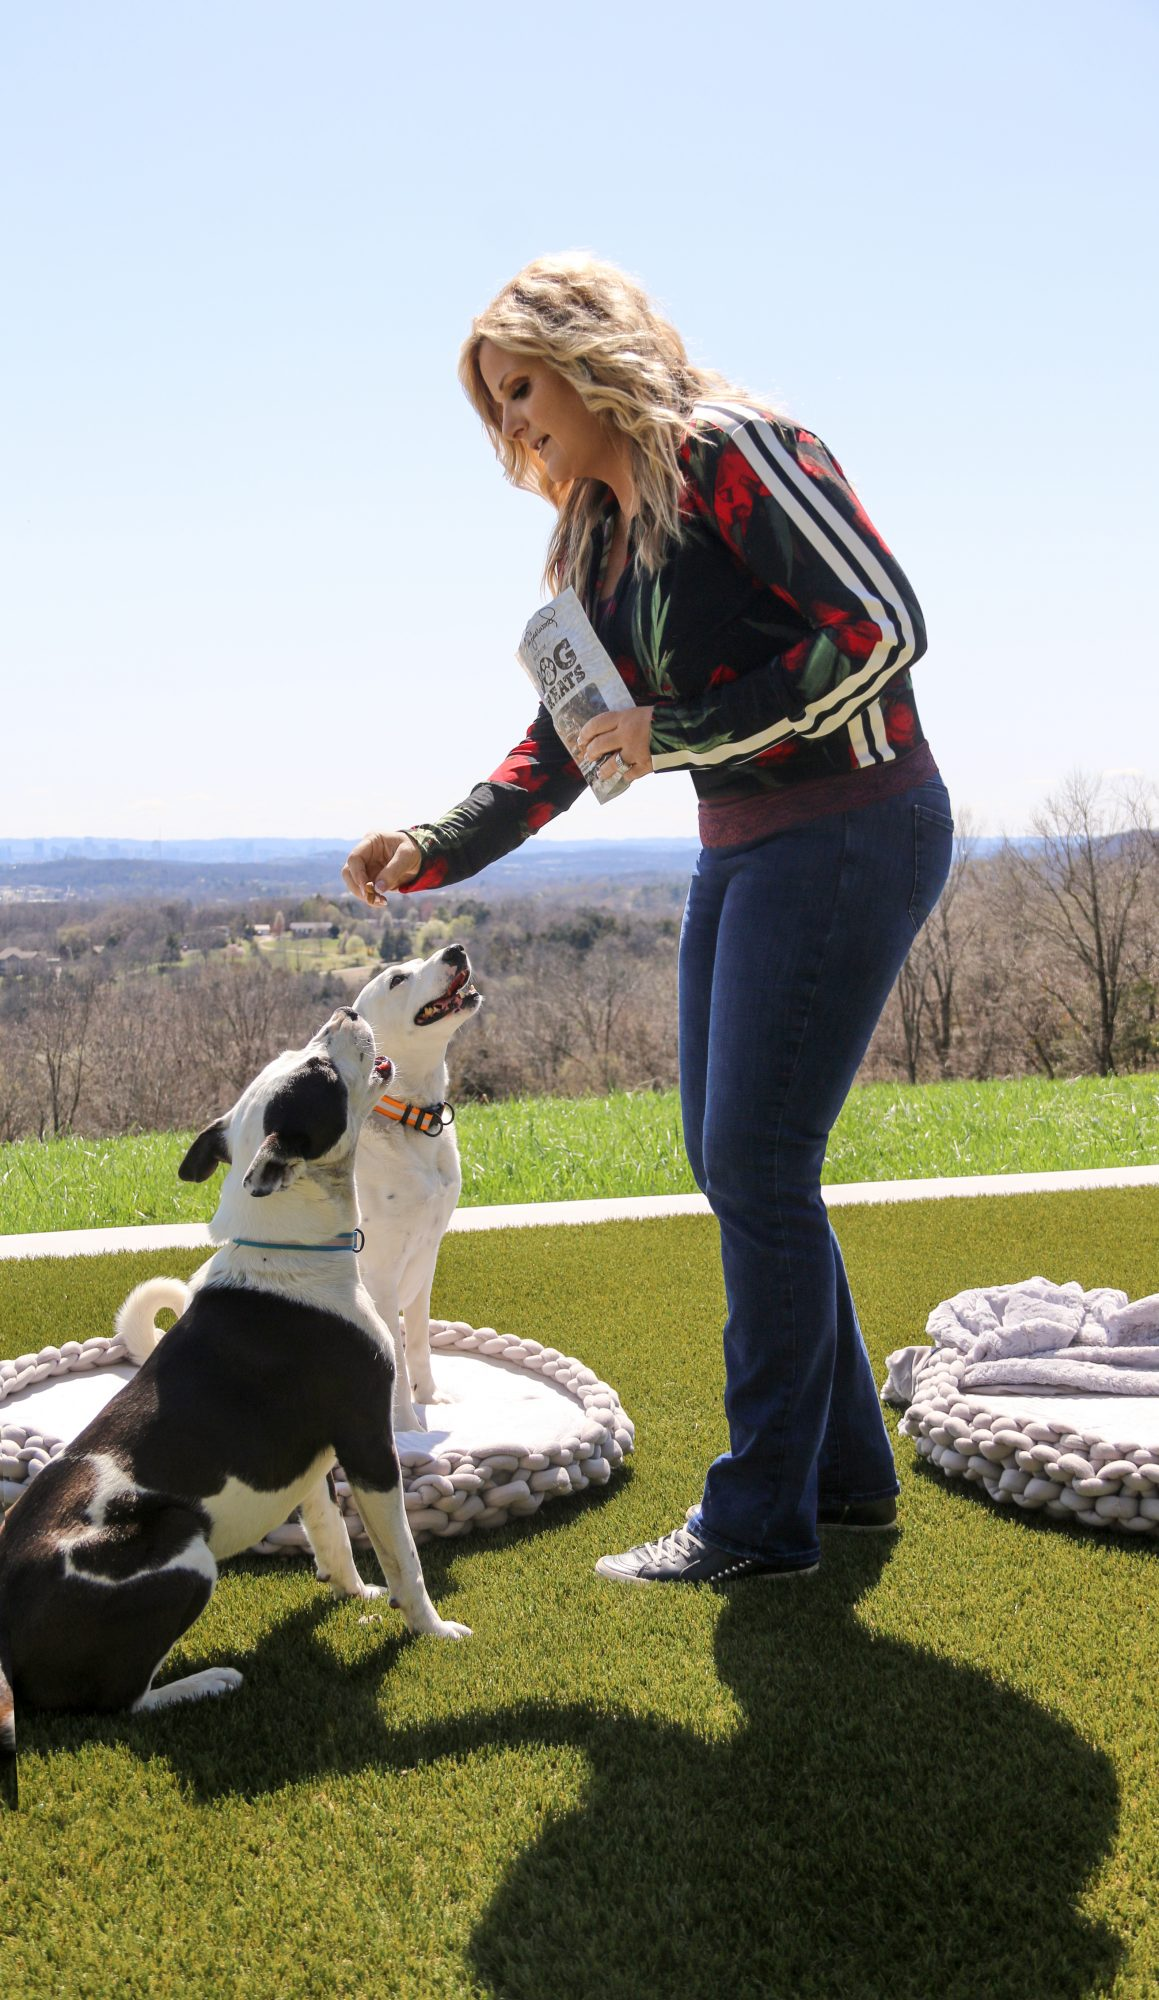 Influencer Trisha Yearwood feeds treats to two adult dogs outdoors